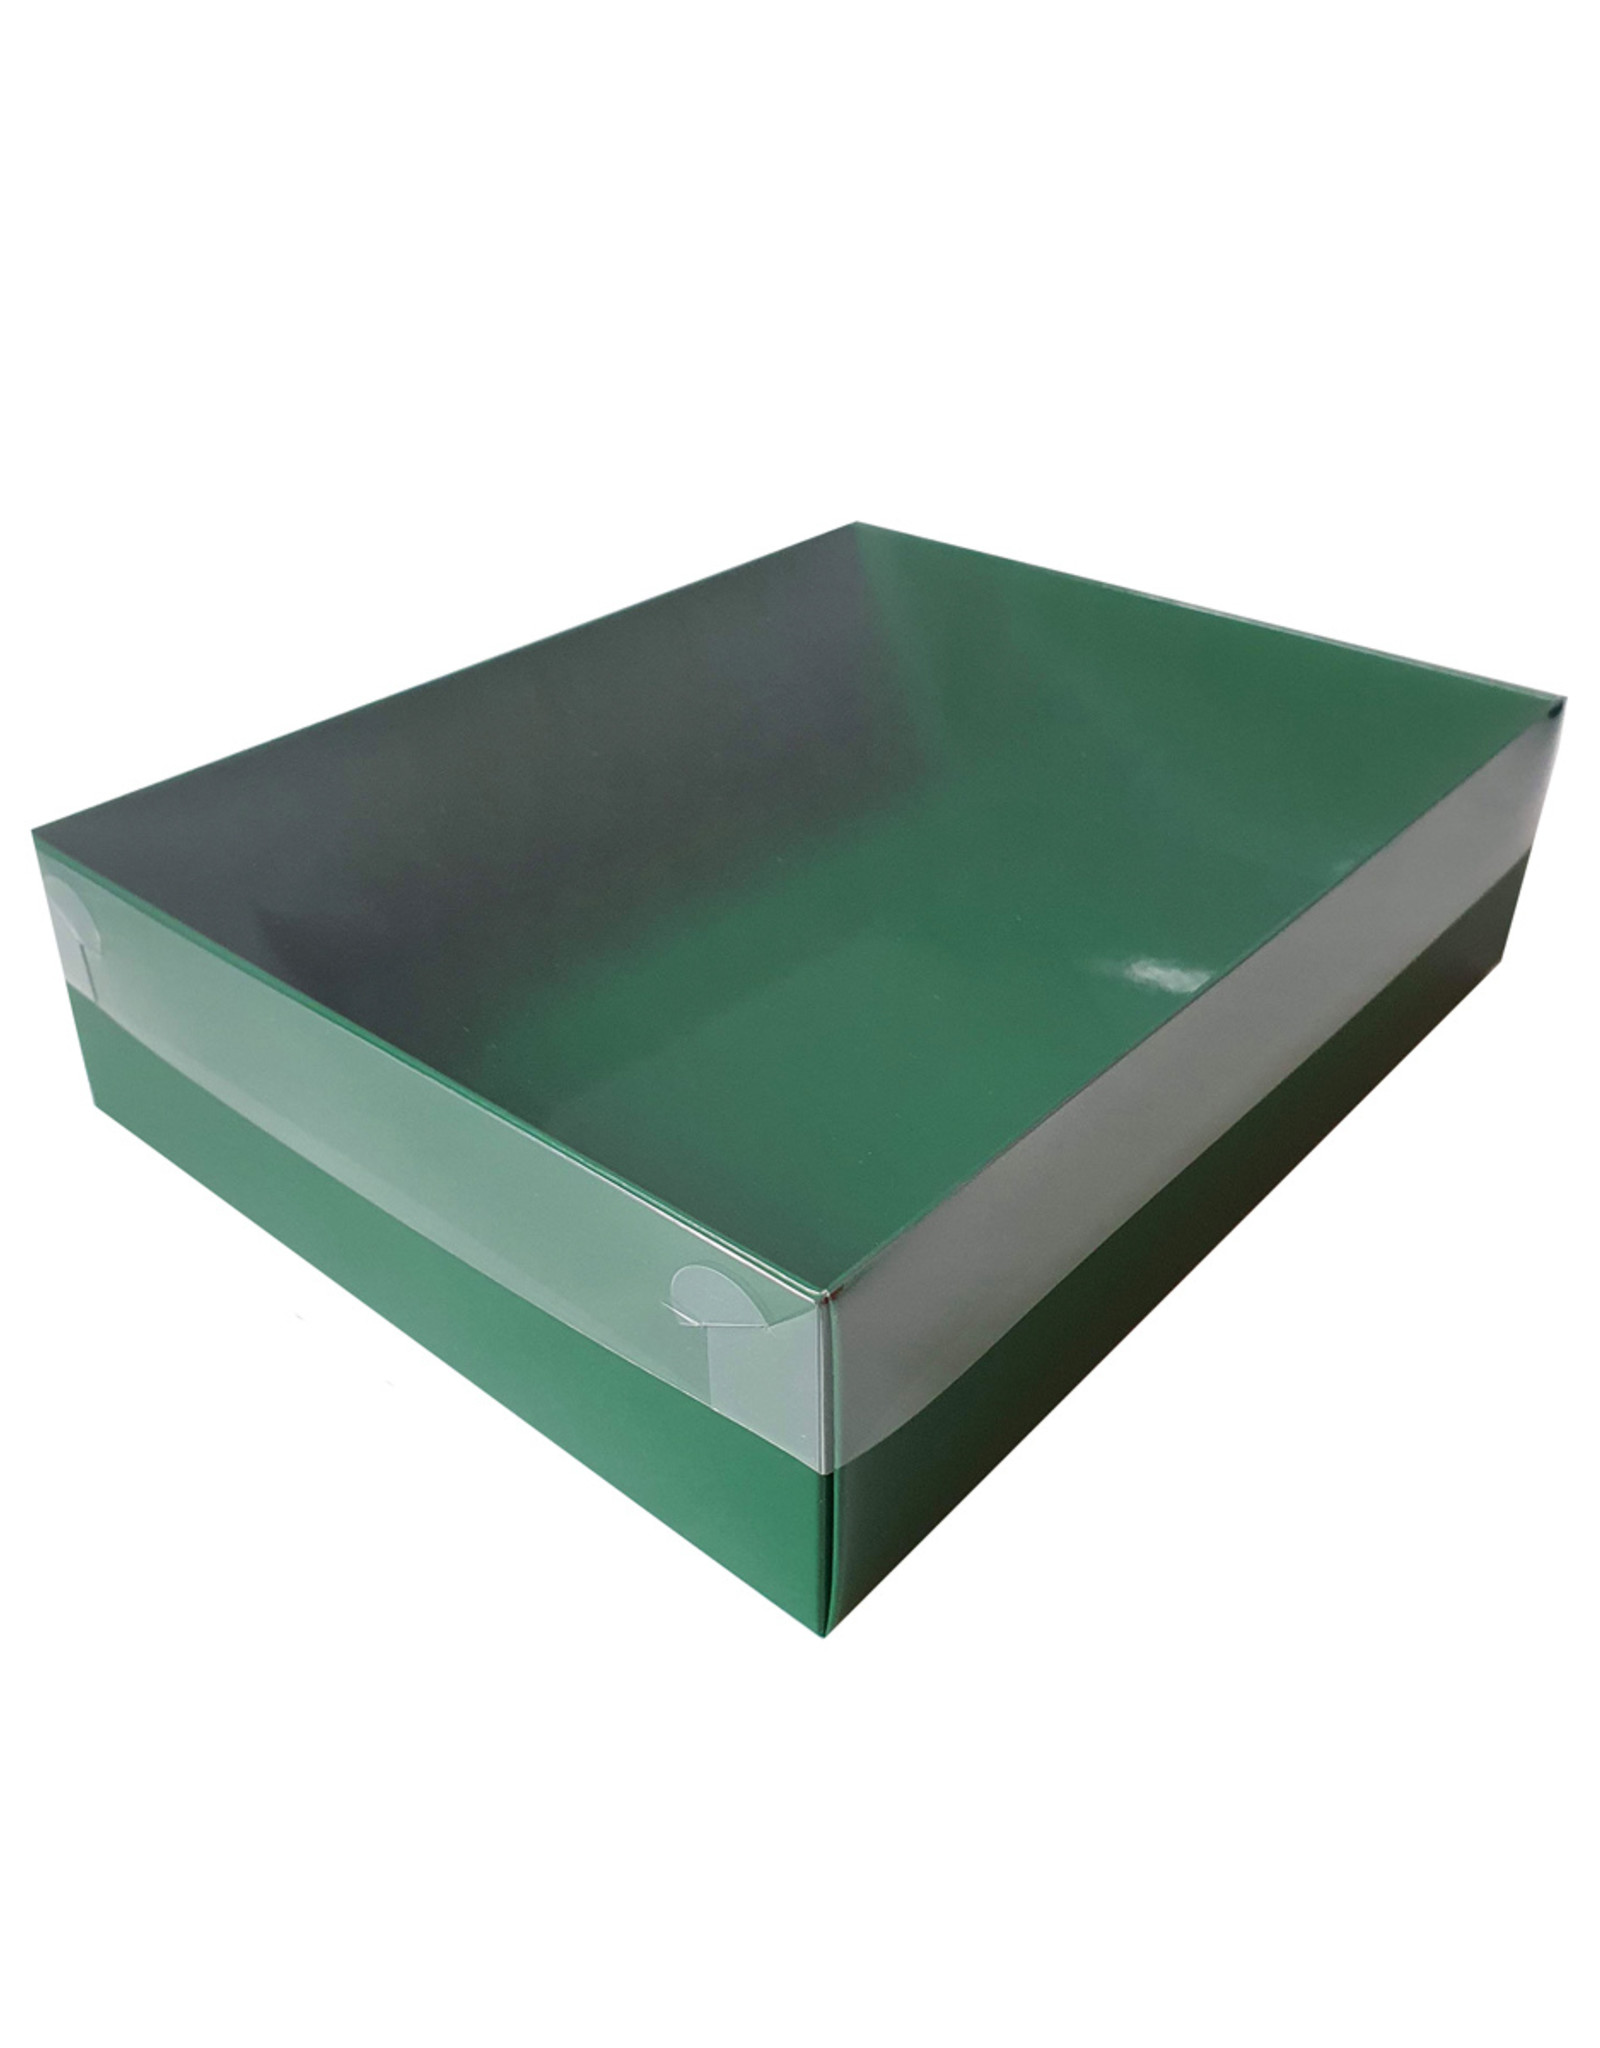 Green sweets box with clear lid - 25 x 20 x 7 cm (per 50 pieces)